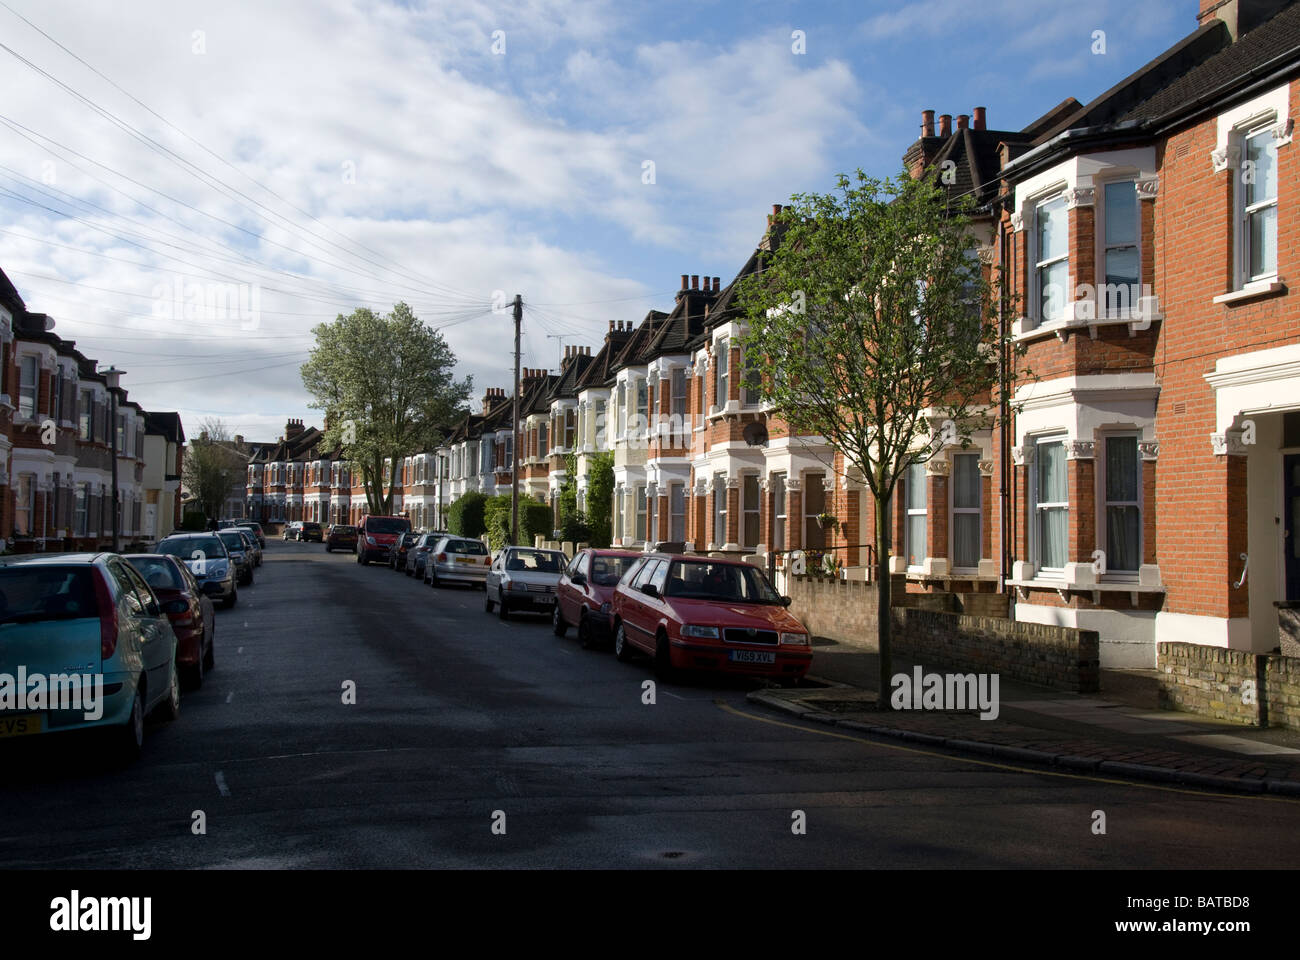 Terraced houses bromley kent england uk stock photo for The bromley